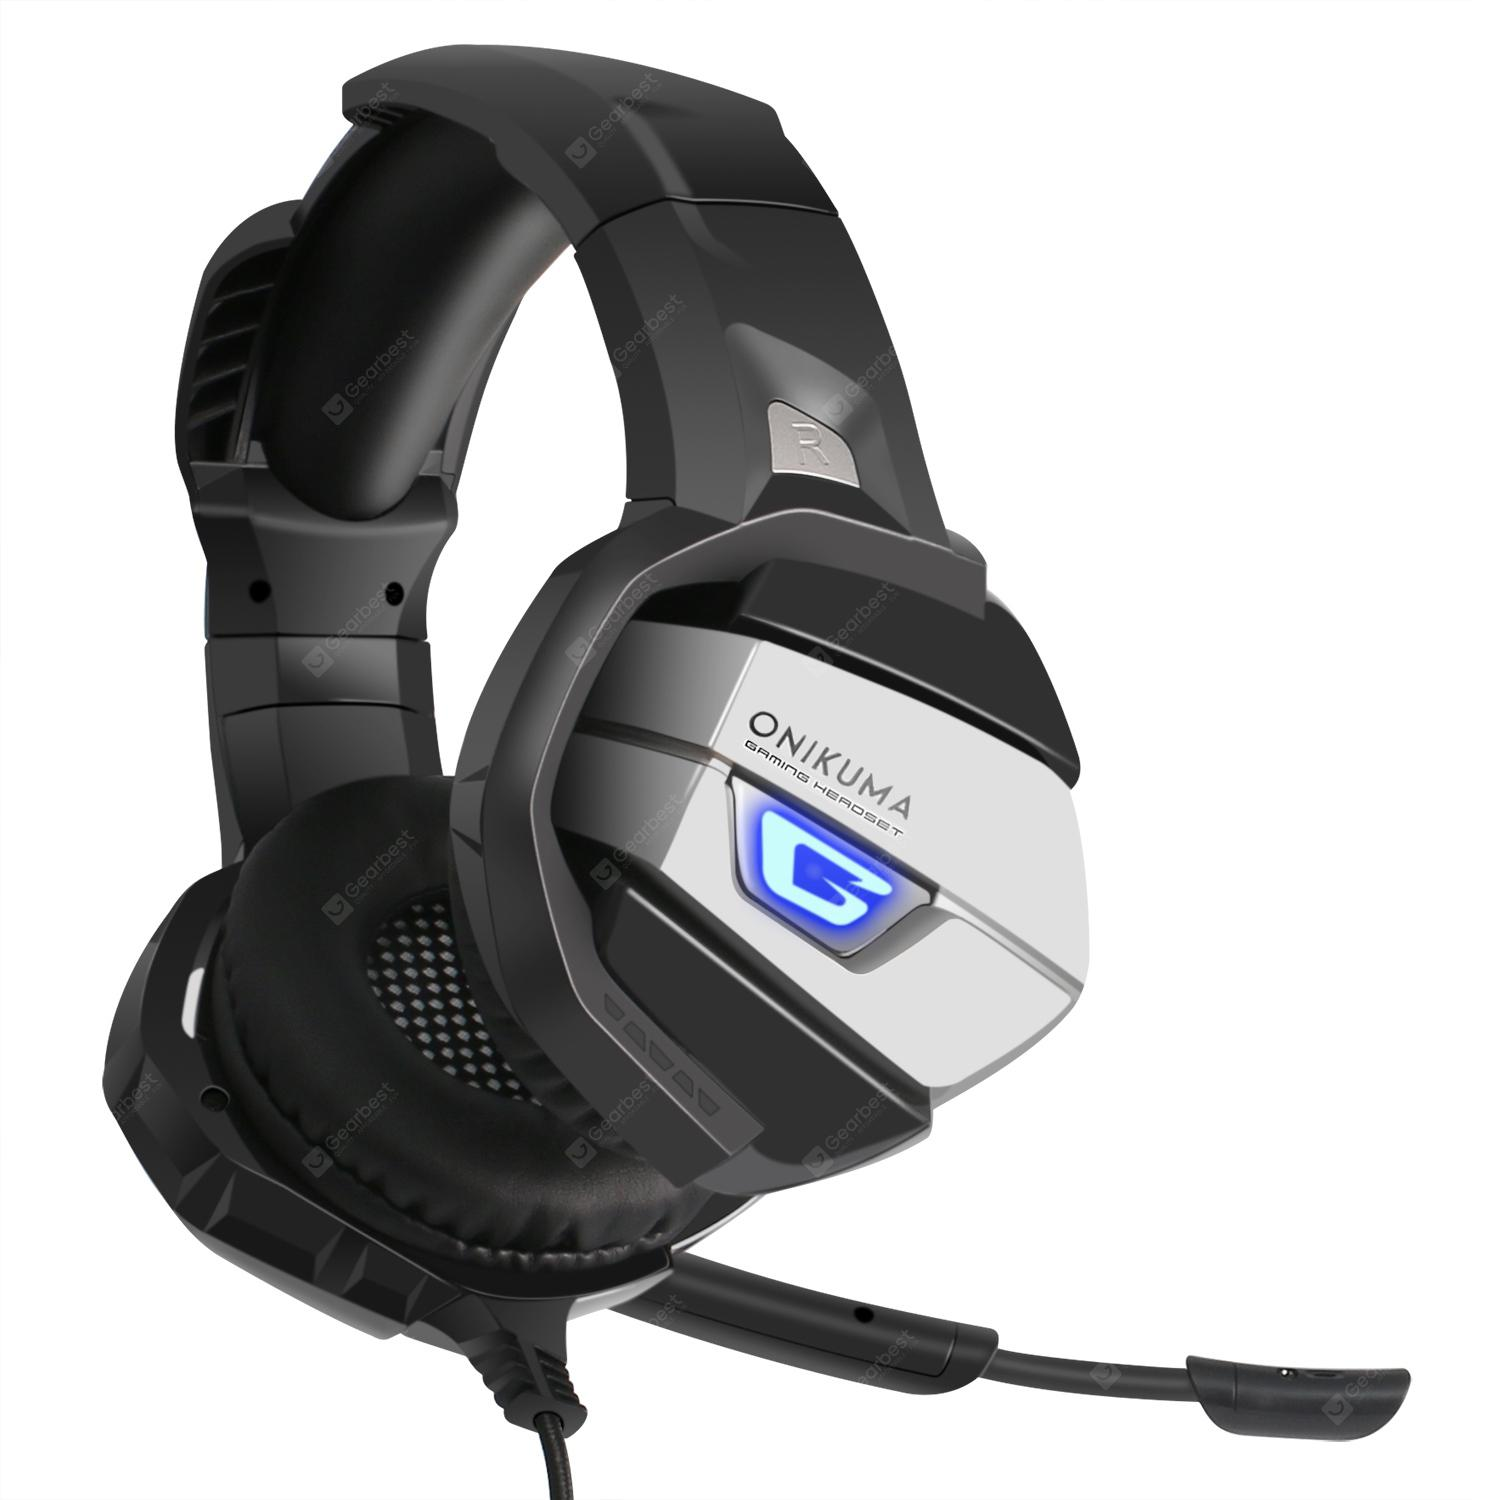 d37b5286257 ONIKUMA K5 Stereo Gaming Headset for PS4, PC, Xbox One ...